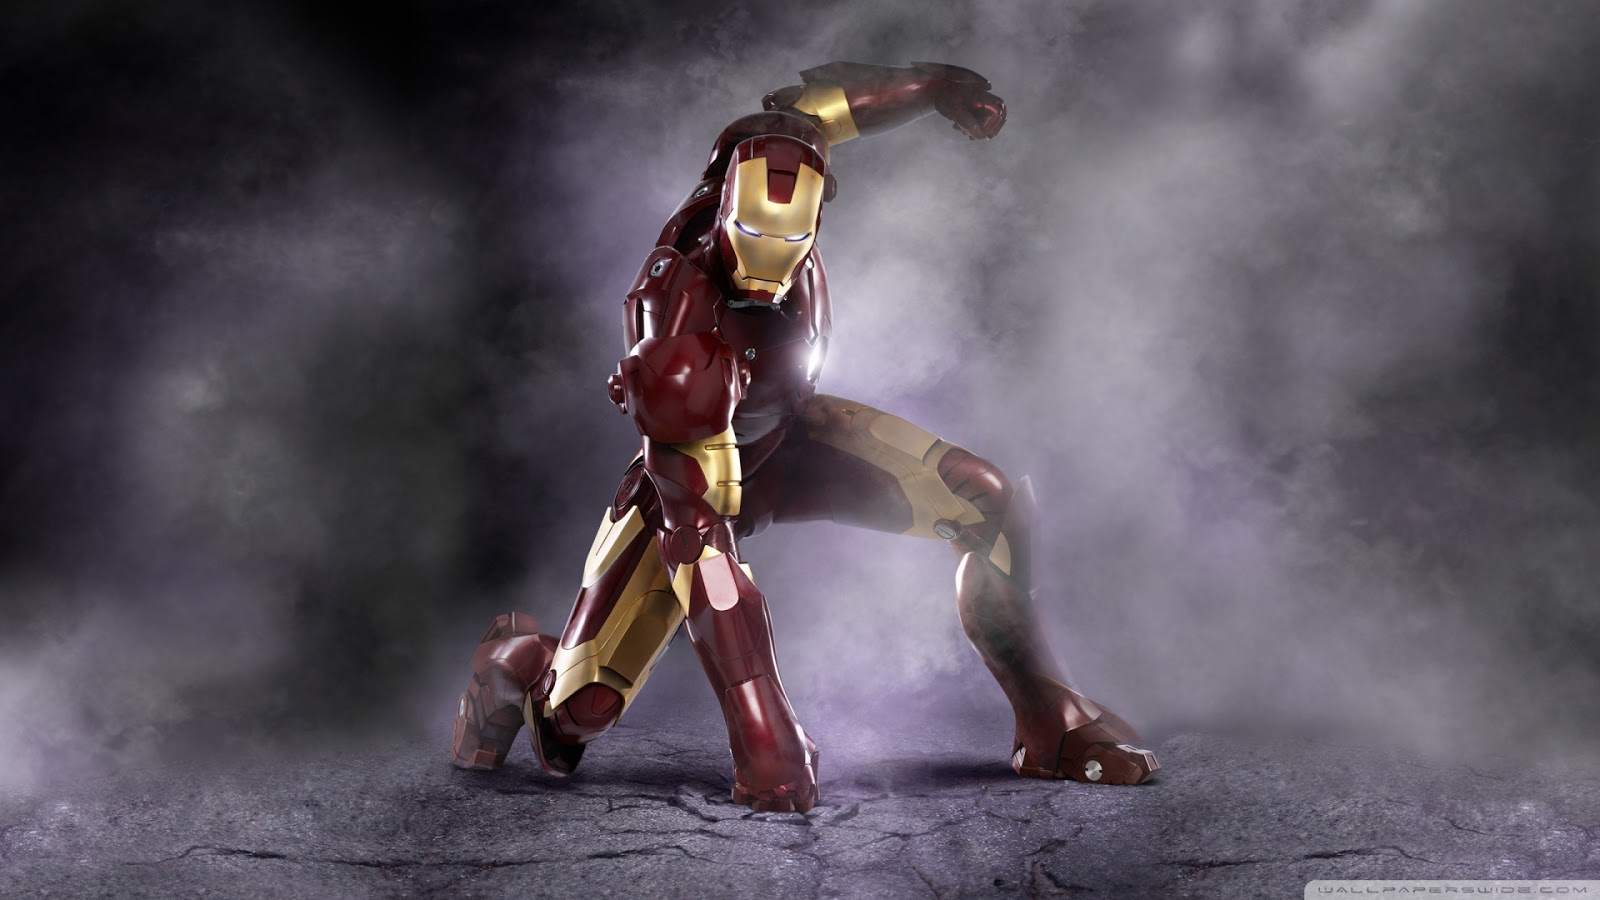 top 10 best hd iron man 3 wallpapers | tracking the tech